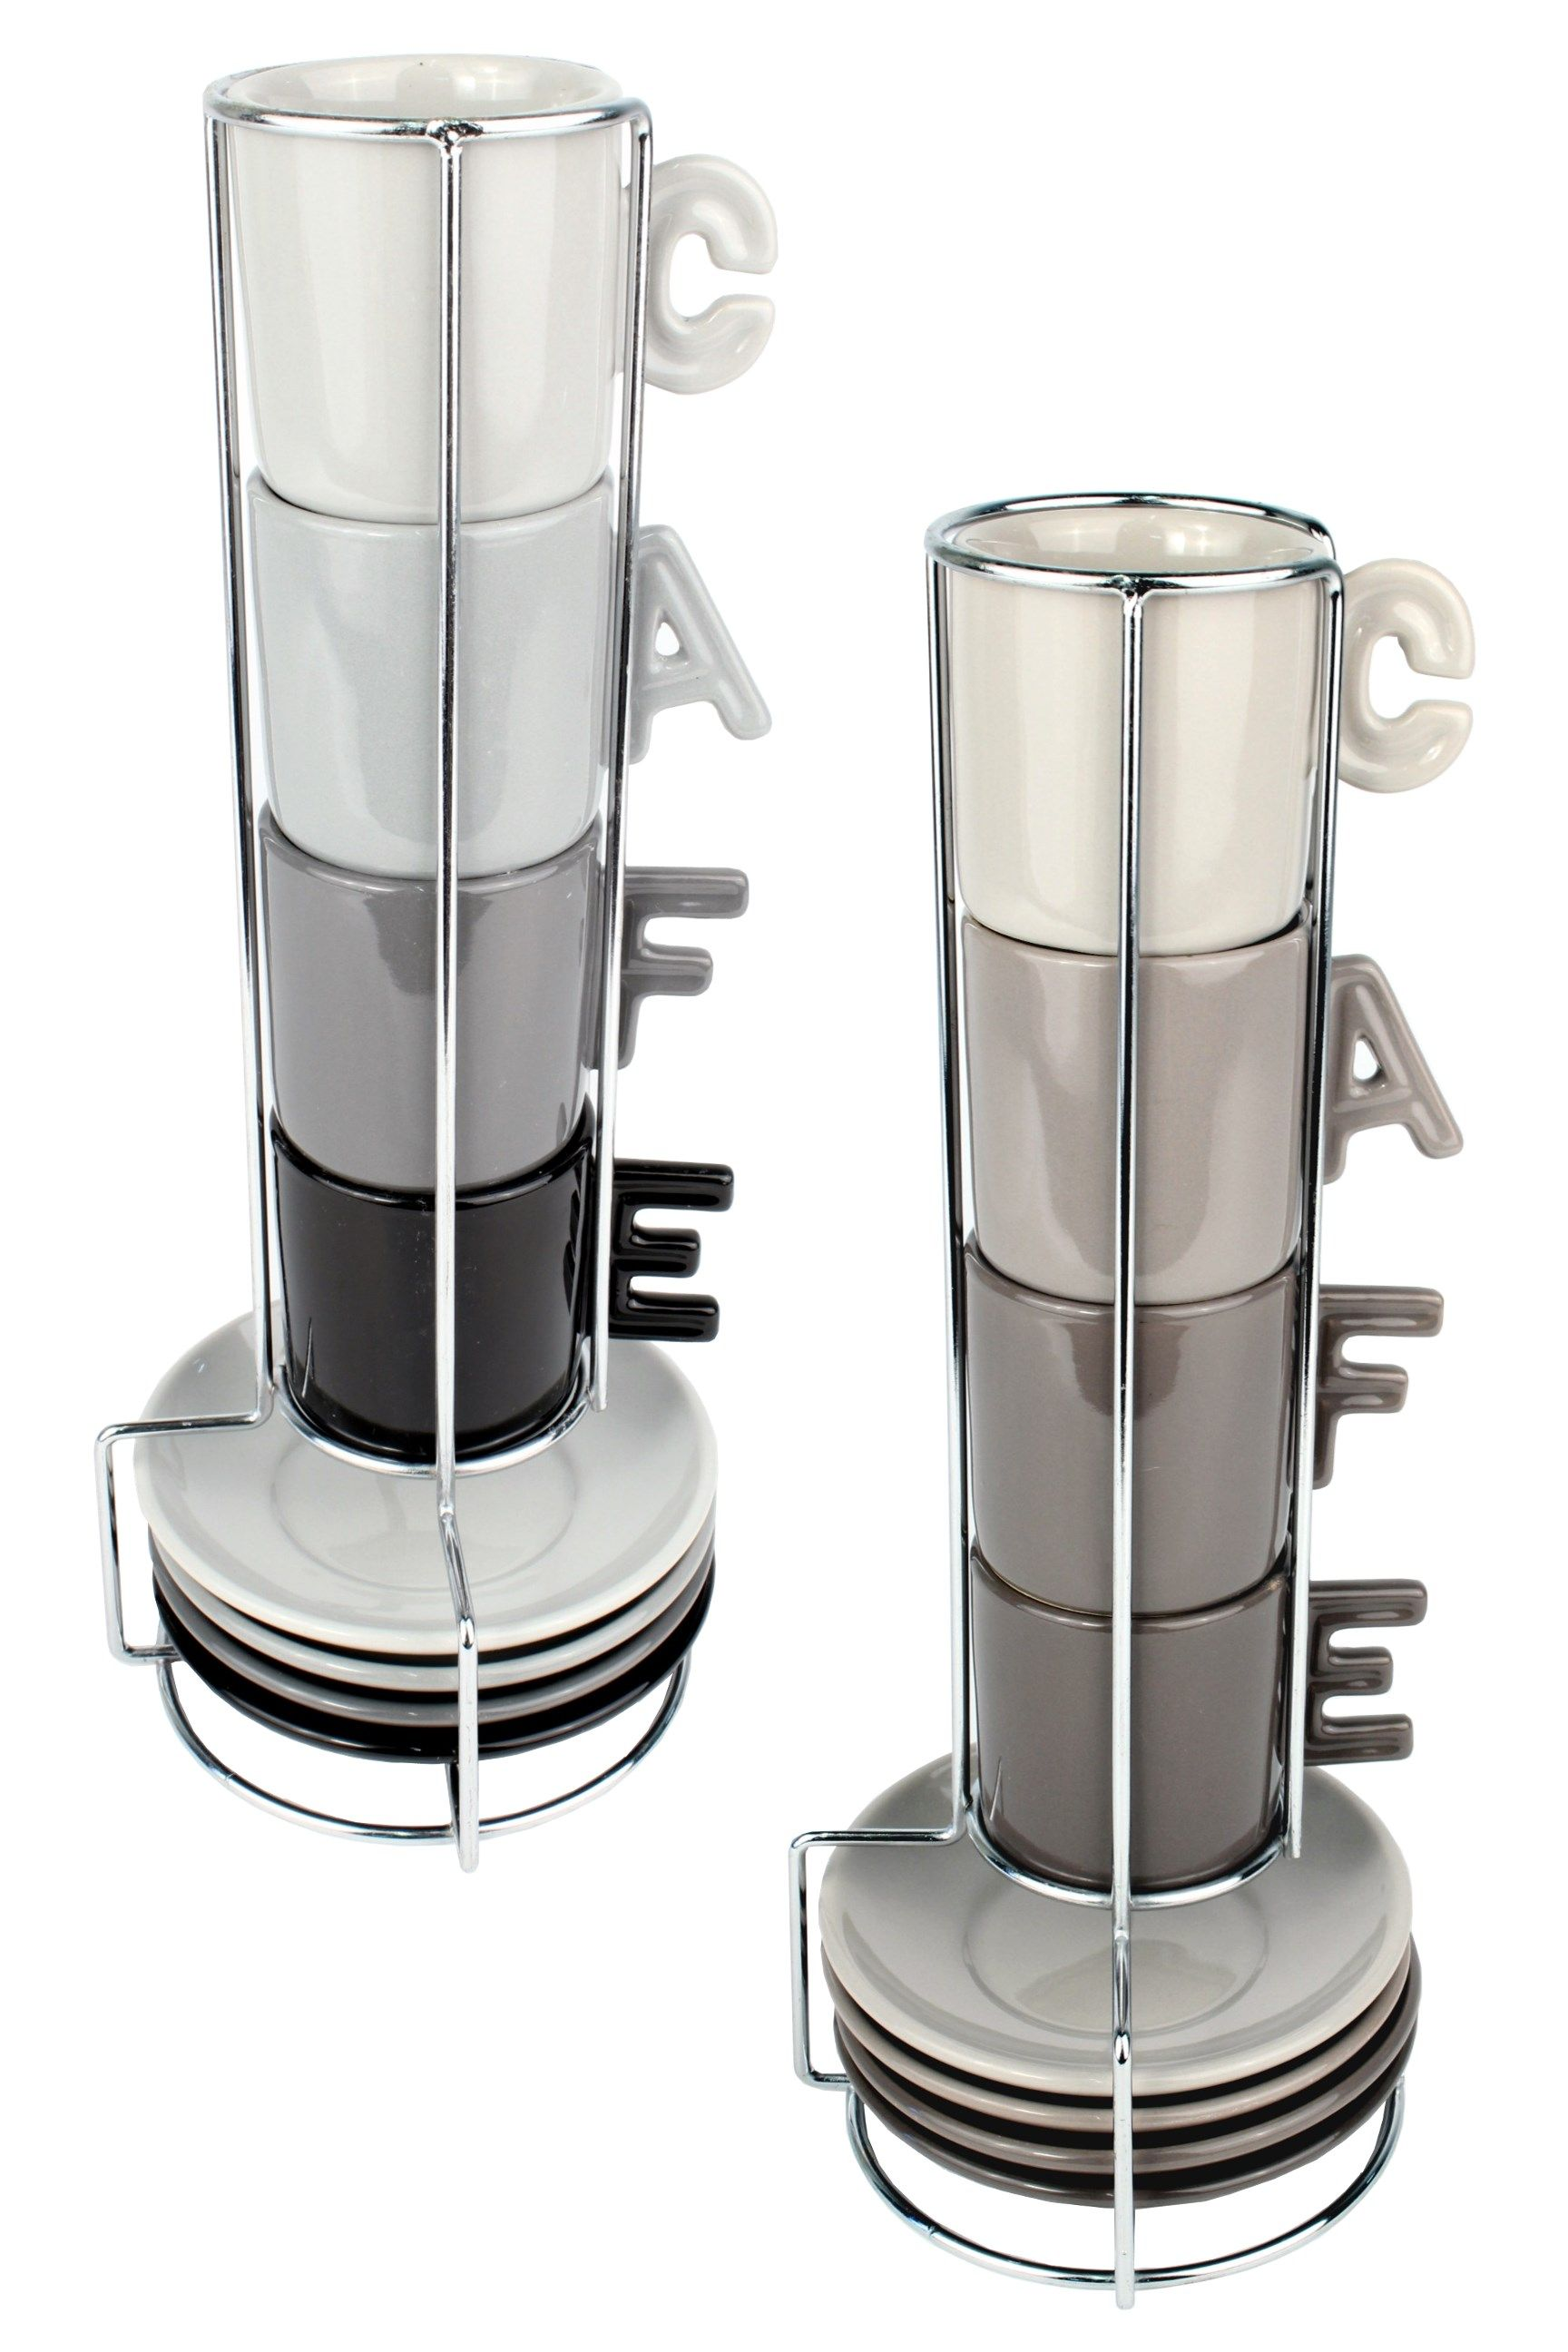 Glass espresso coffee cups uk - Espresso Cup Saucer Set With Stand Coffee Mug Tower Set Of 4 Cups